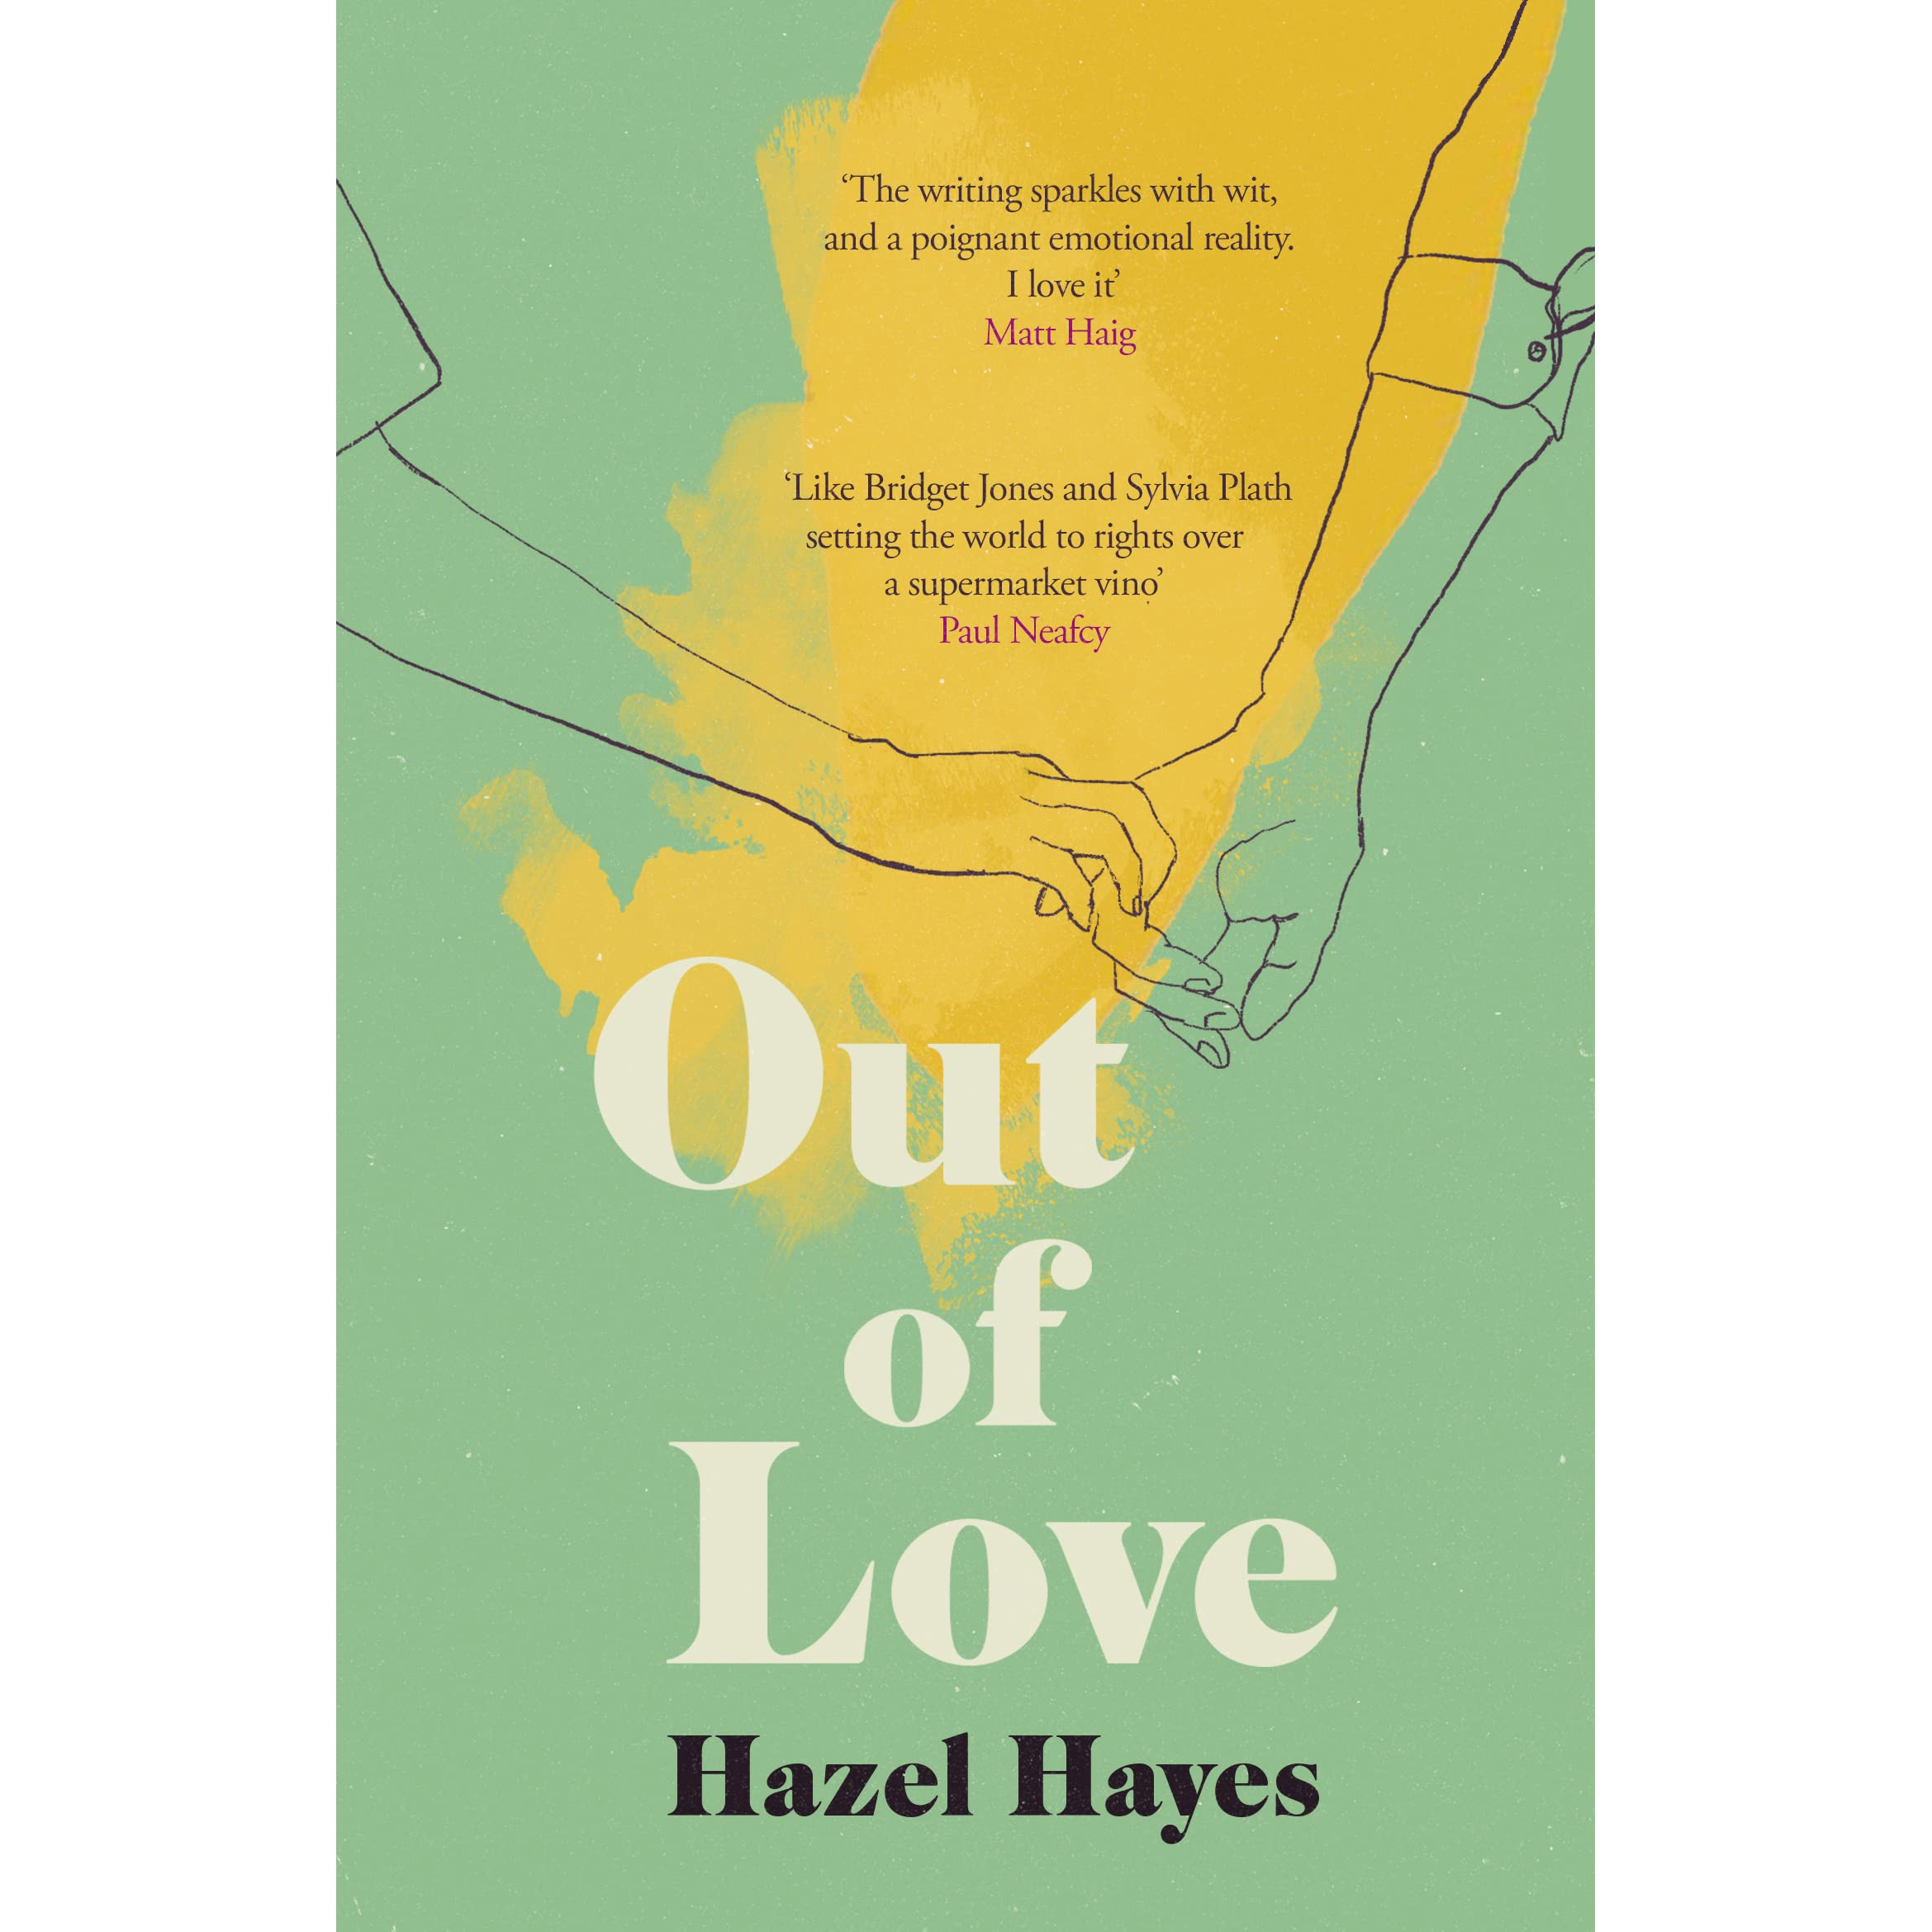 Out of Love by Hazel Hayes